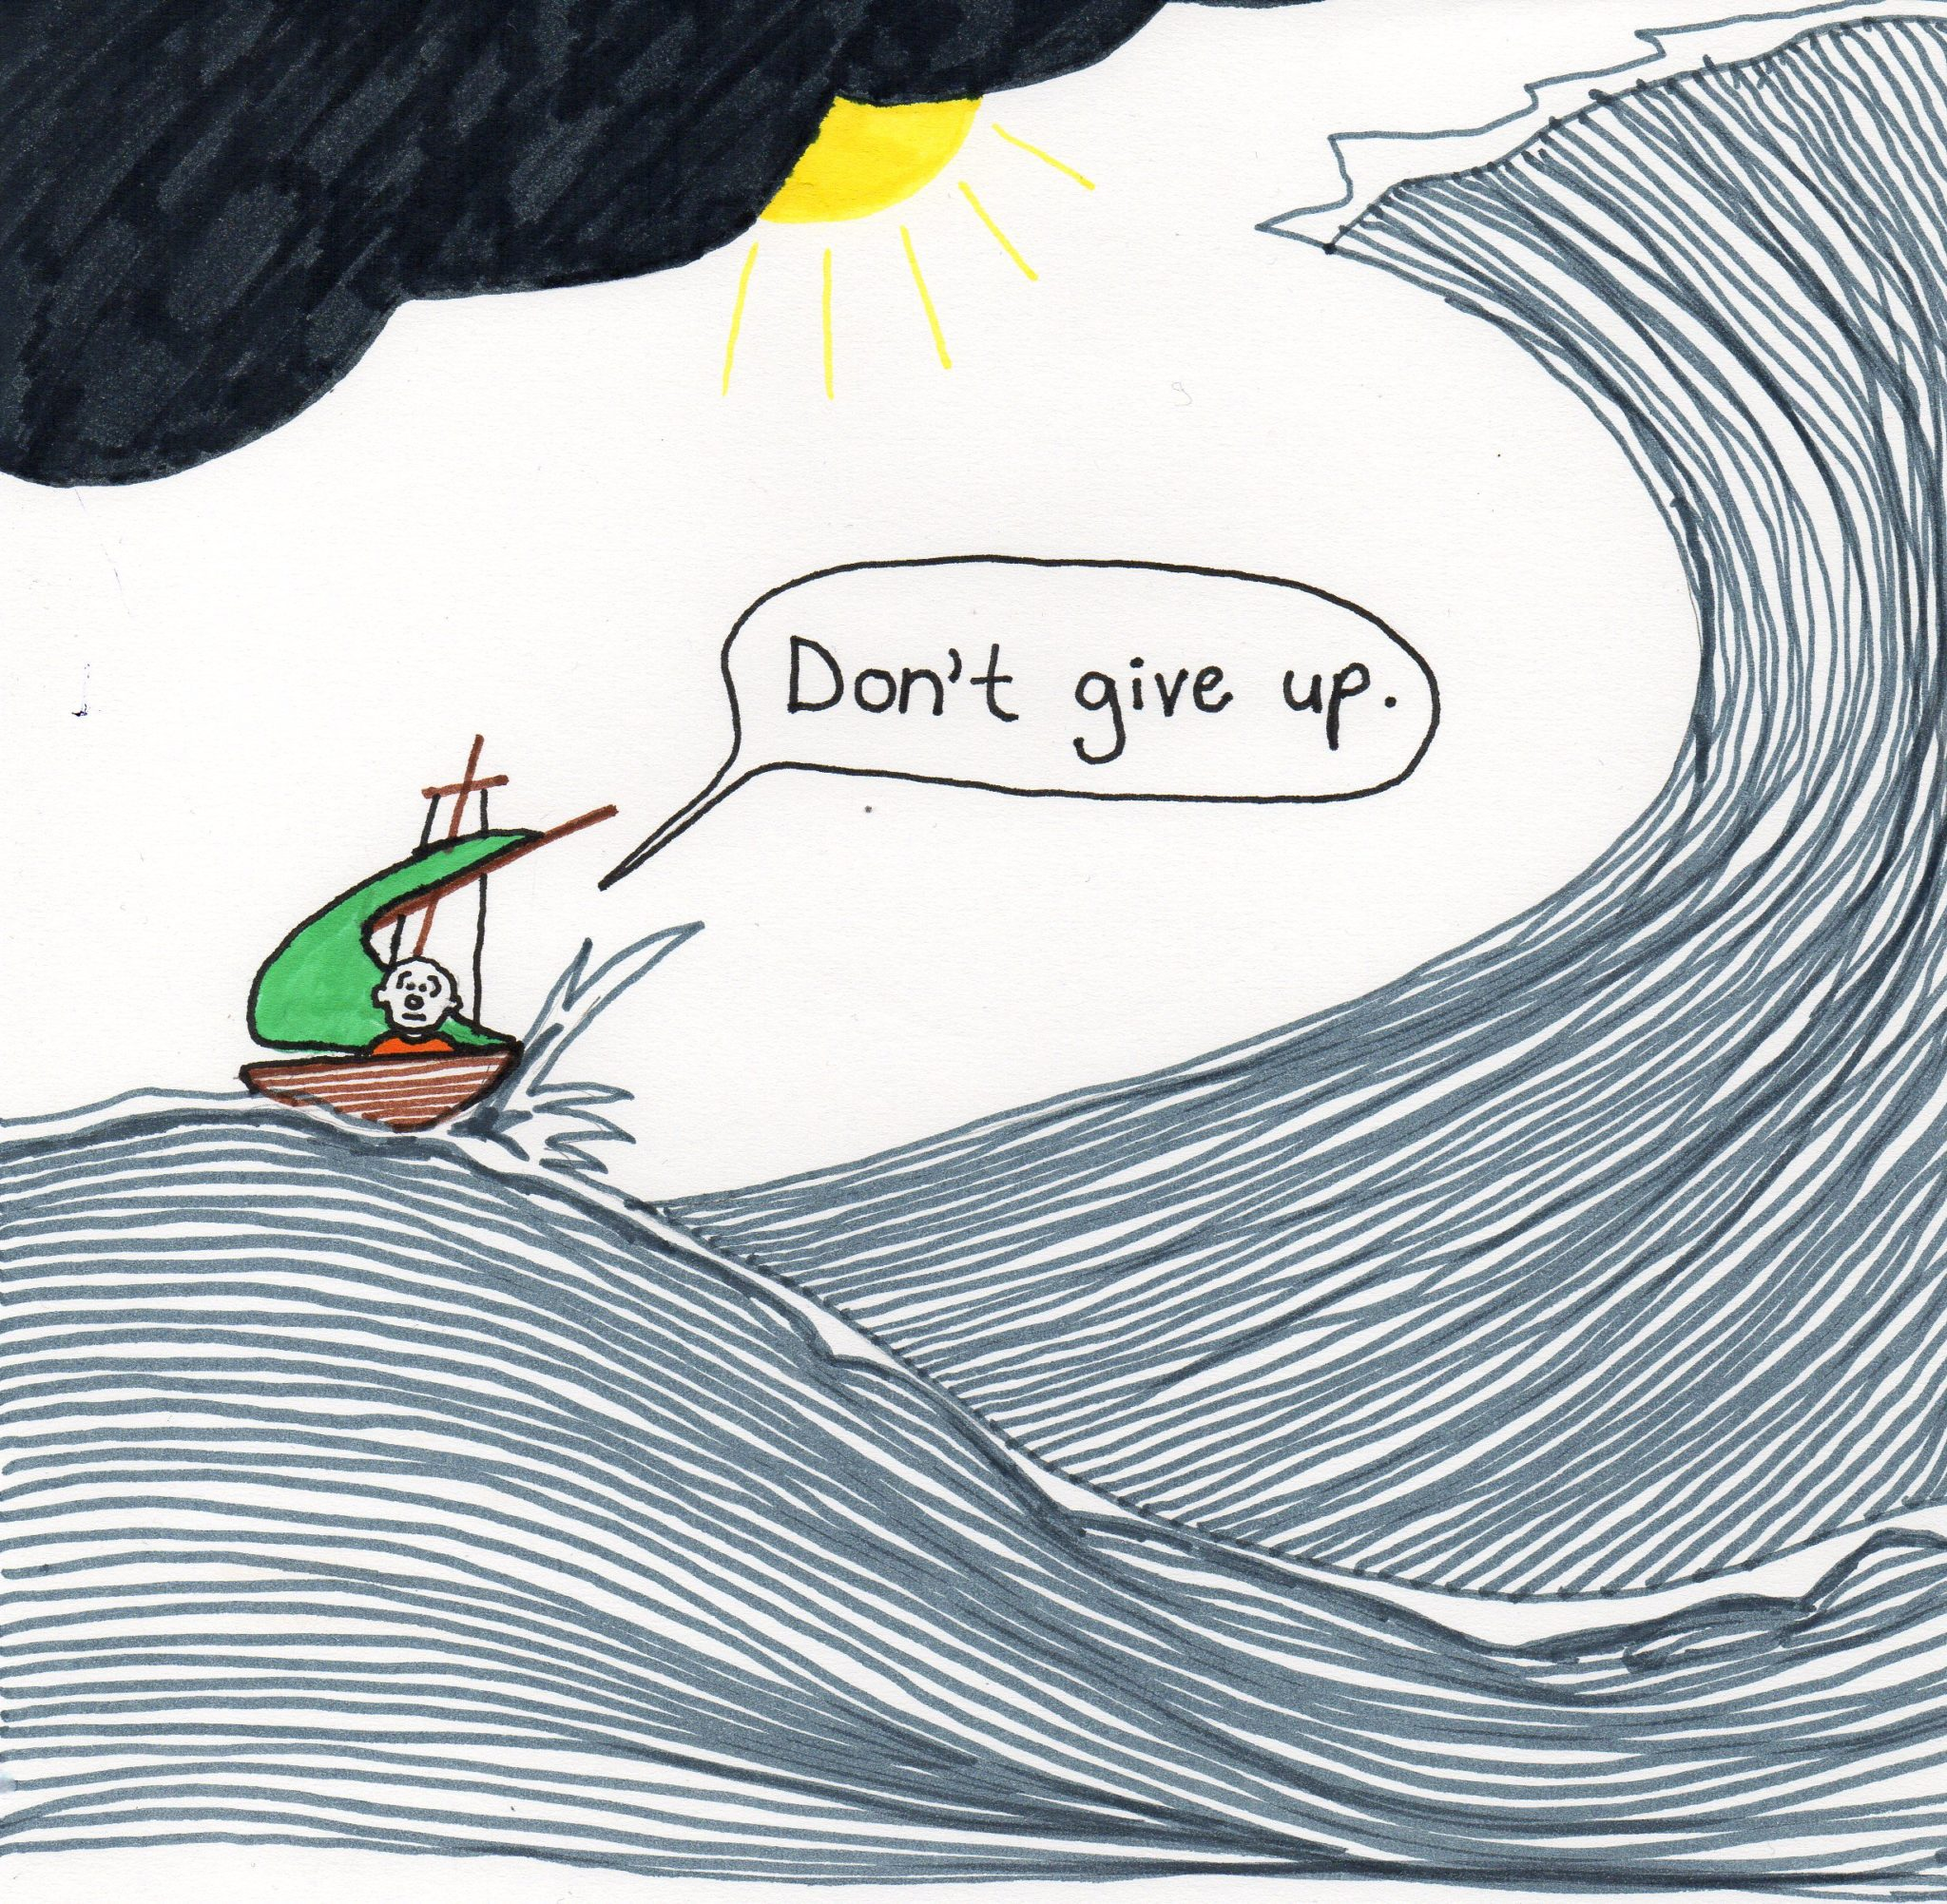 don't give up - a doodle about living with depression